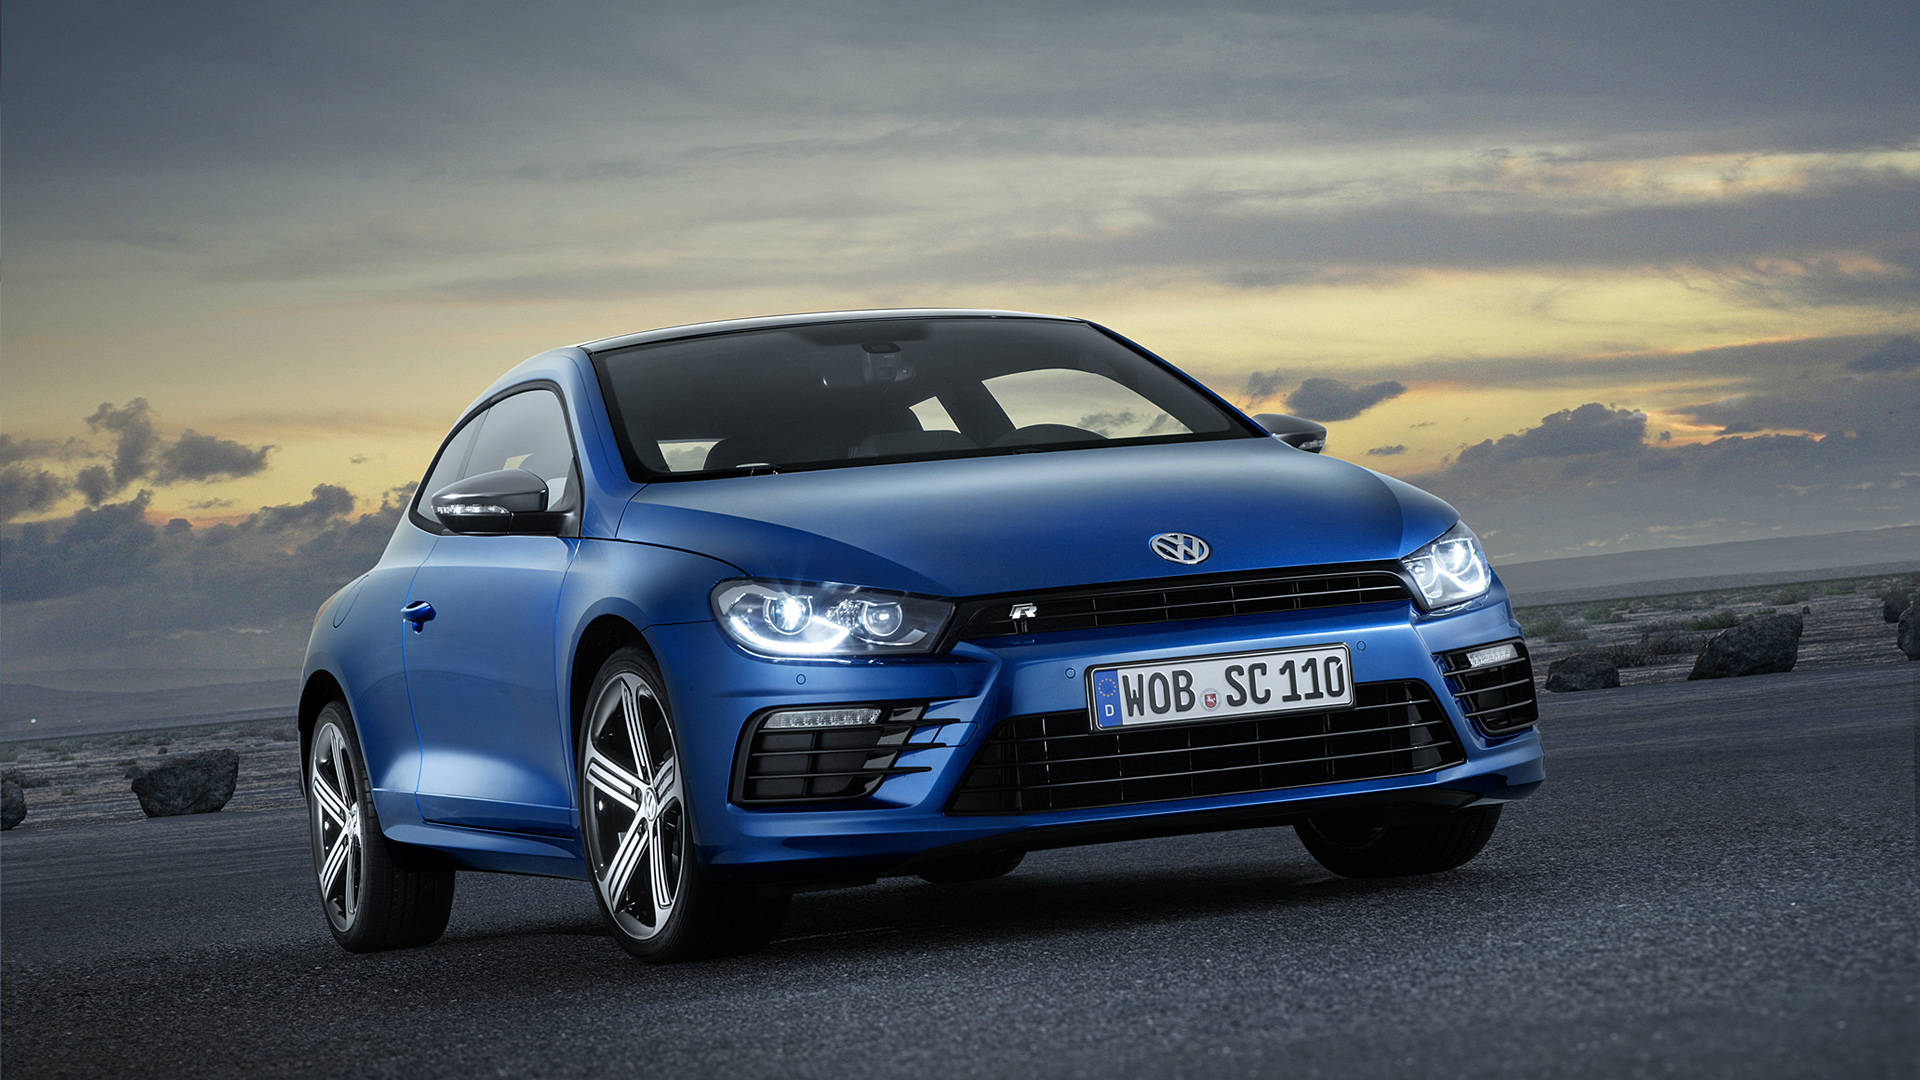 2015 Volkswagen Scirocco R Hd Car Wallpaper   HD 1920x1080